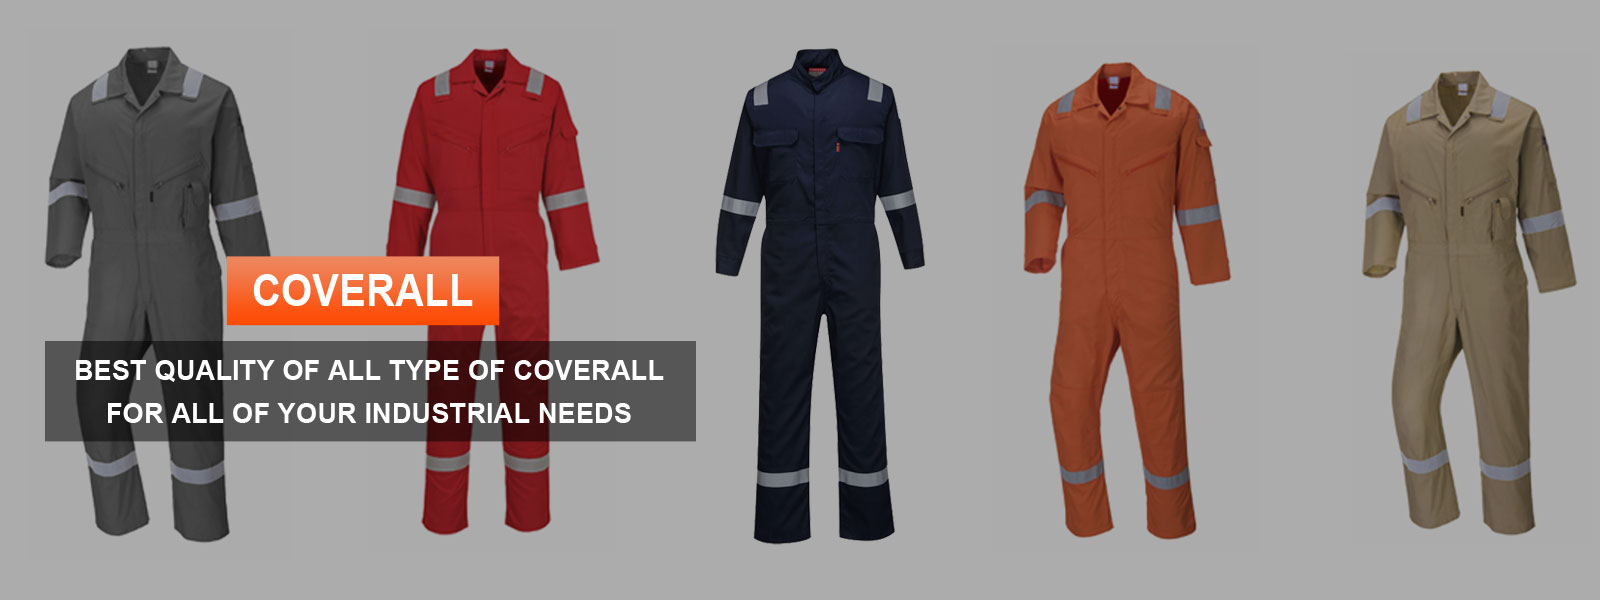 Coverall Manufacturers in Niger